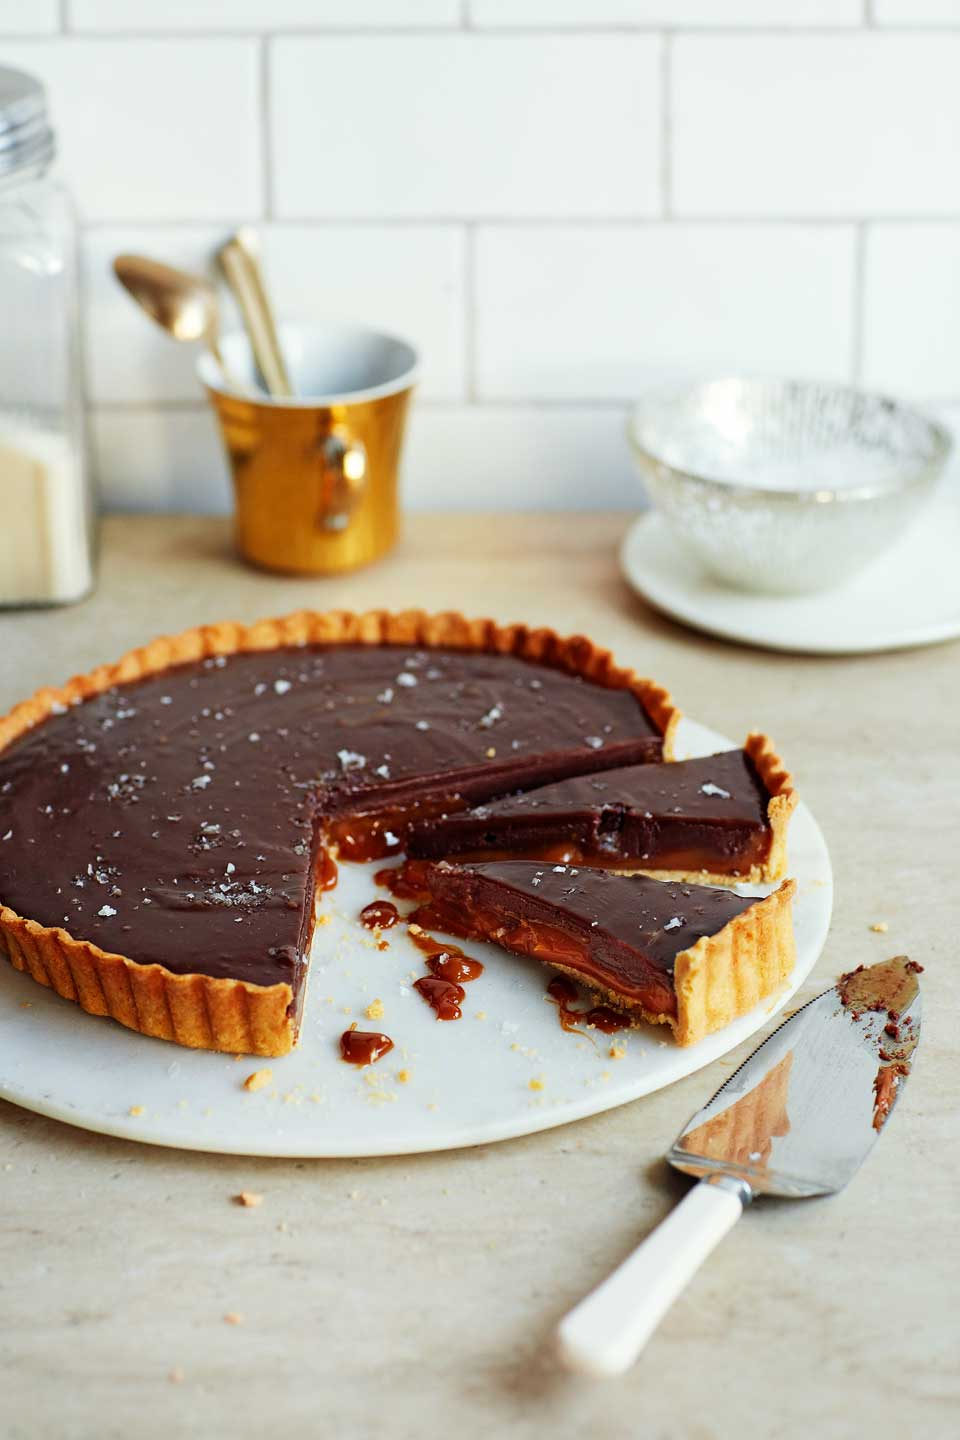 Salted chocolate and dulce de leche tart